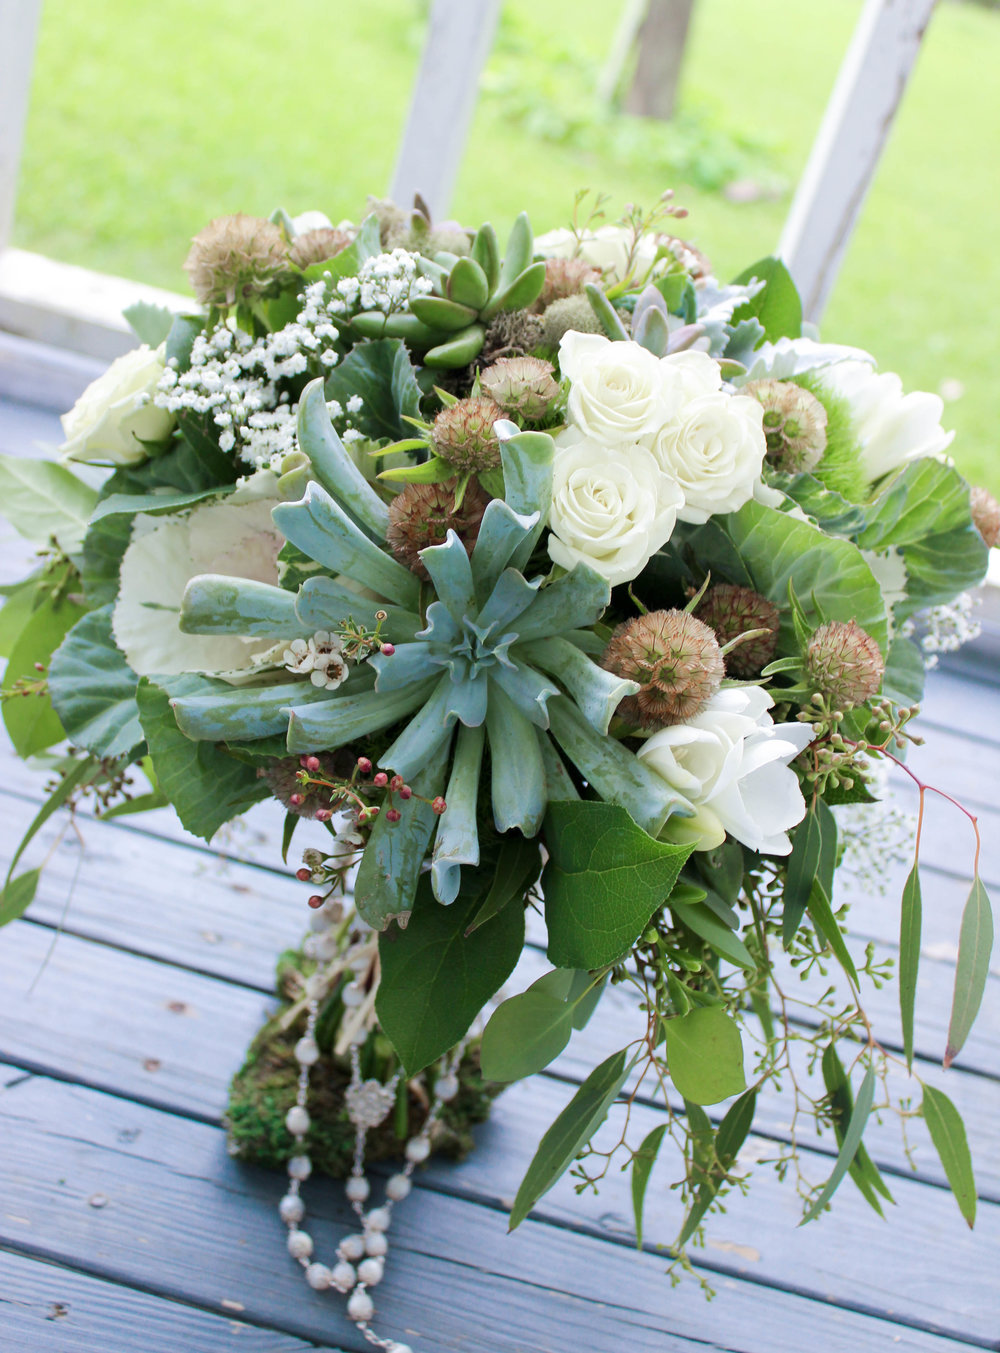 The bride's bouquet featured succulents, scabiosa pods, kale, eucalyptus, dusty miller and few ivory spray roses, freesia and baby's breath sprinkled in to add a touch of softness.